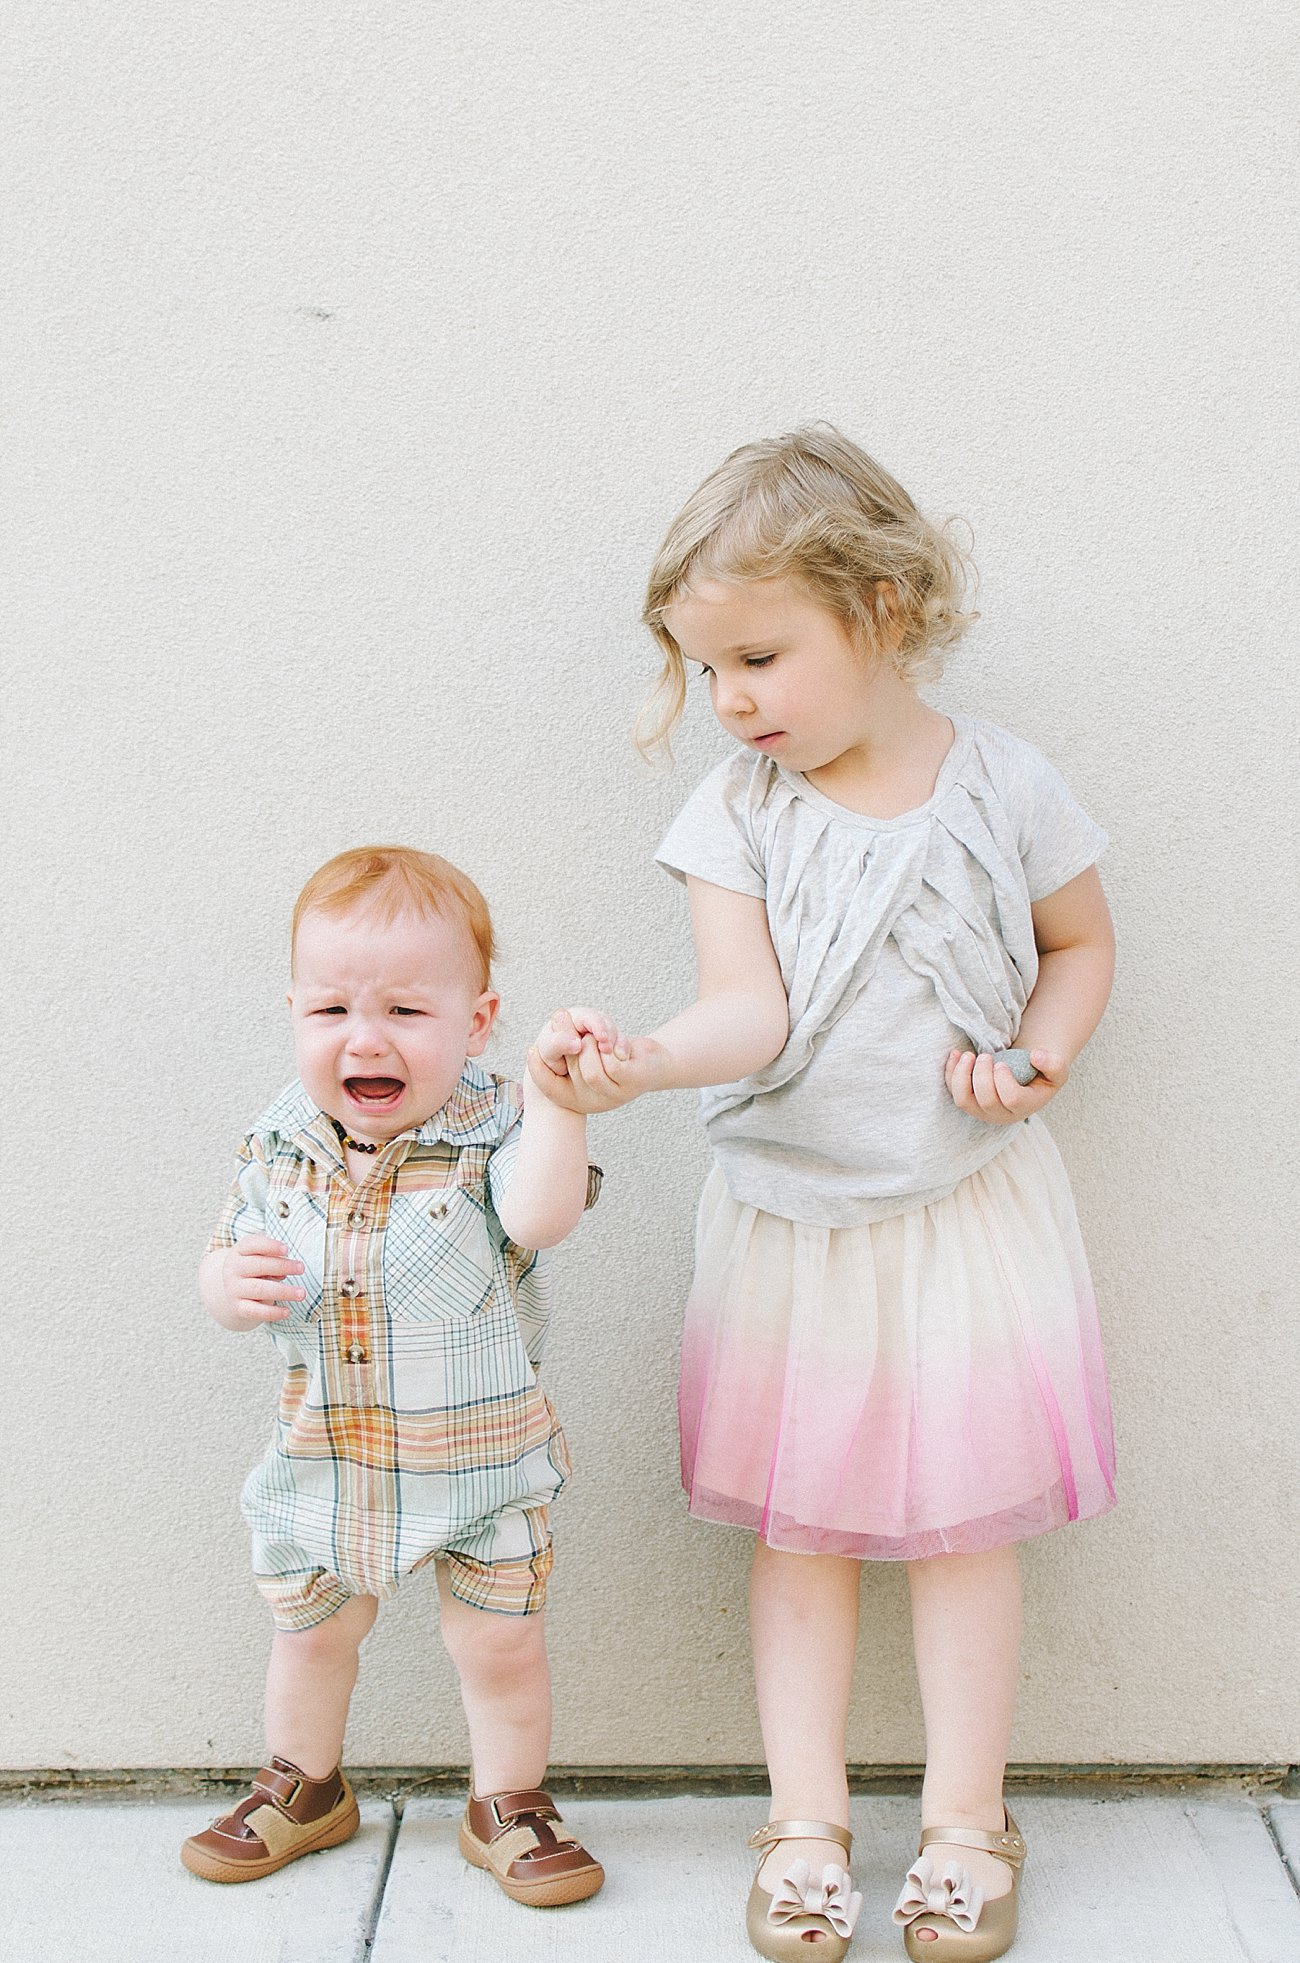 Ethically Made Easter Outfits for Women, Children, and Babies - Ethical Fashion - Fair Trade Fashion (10)